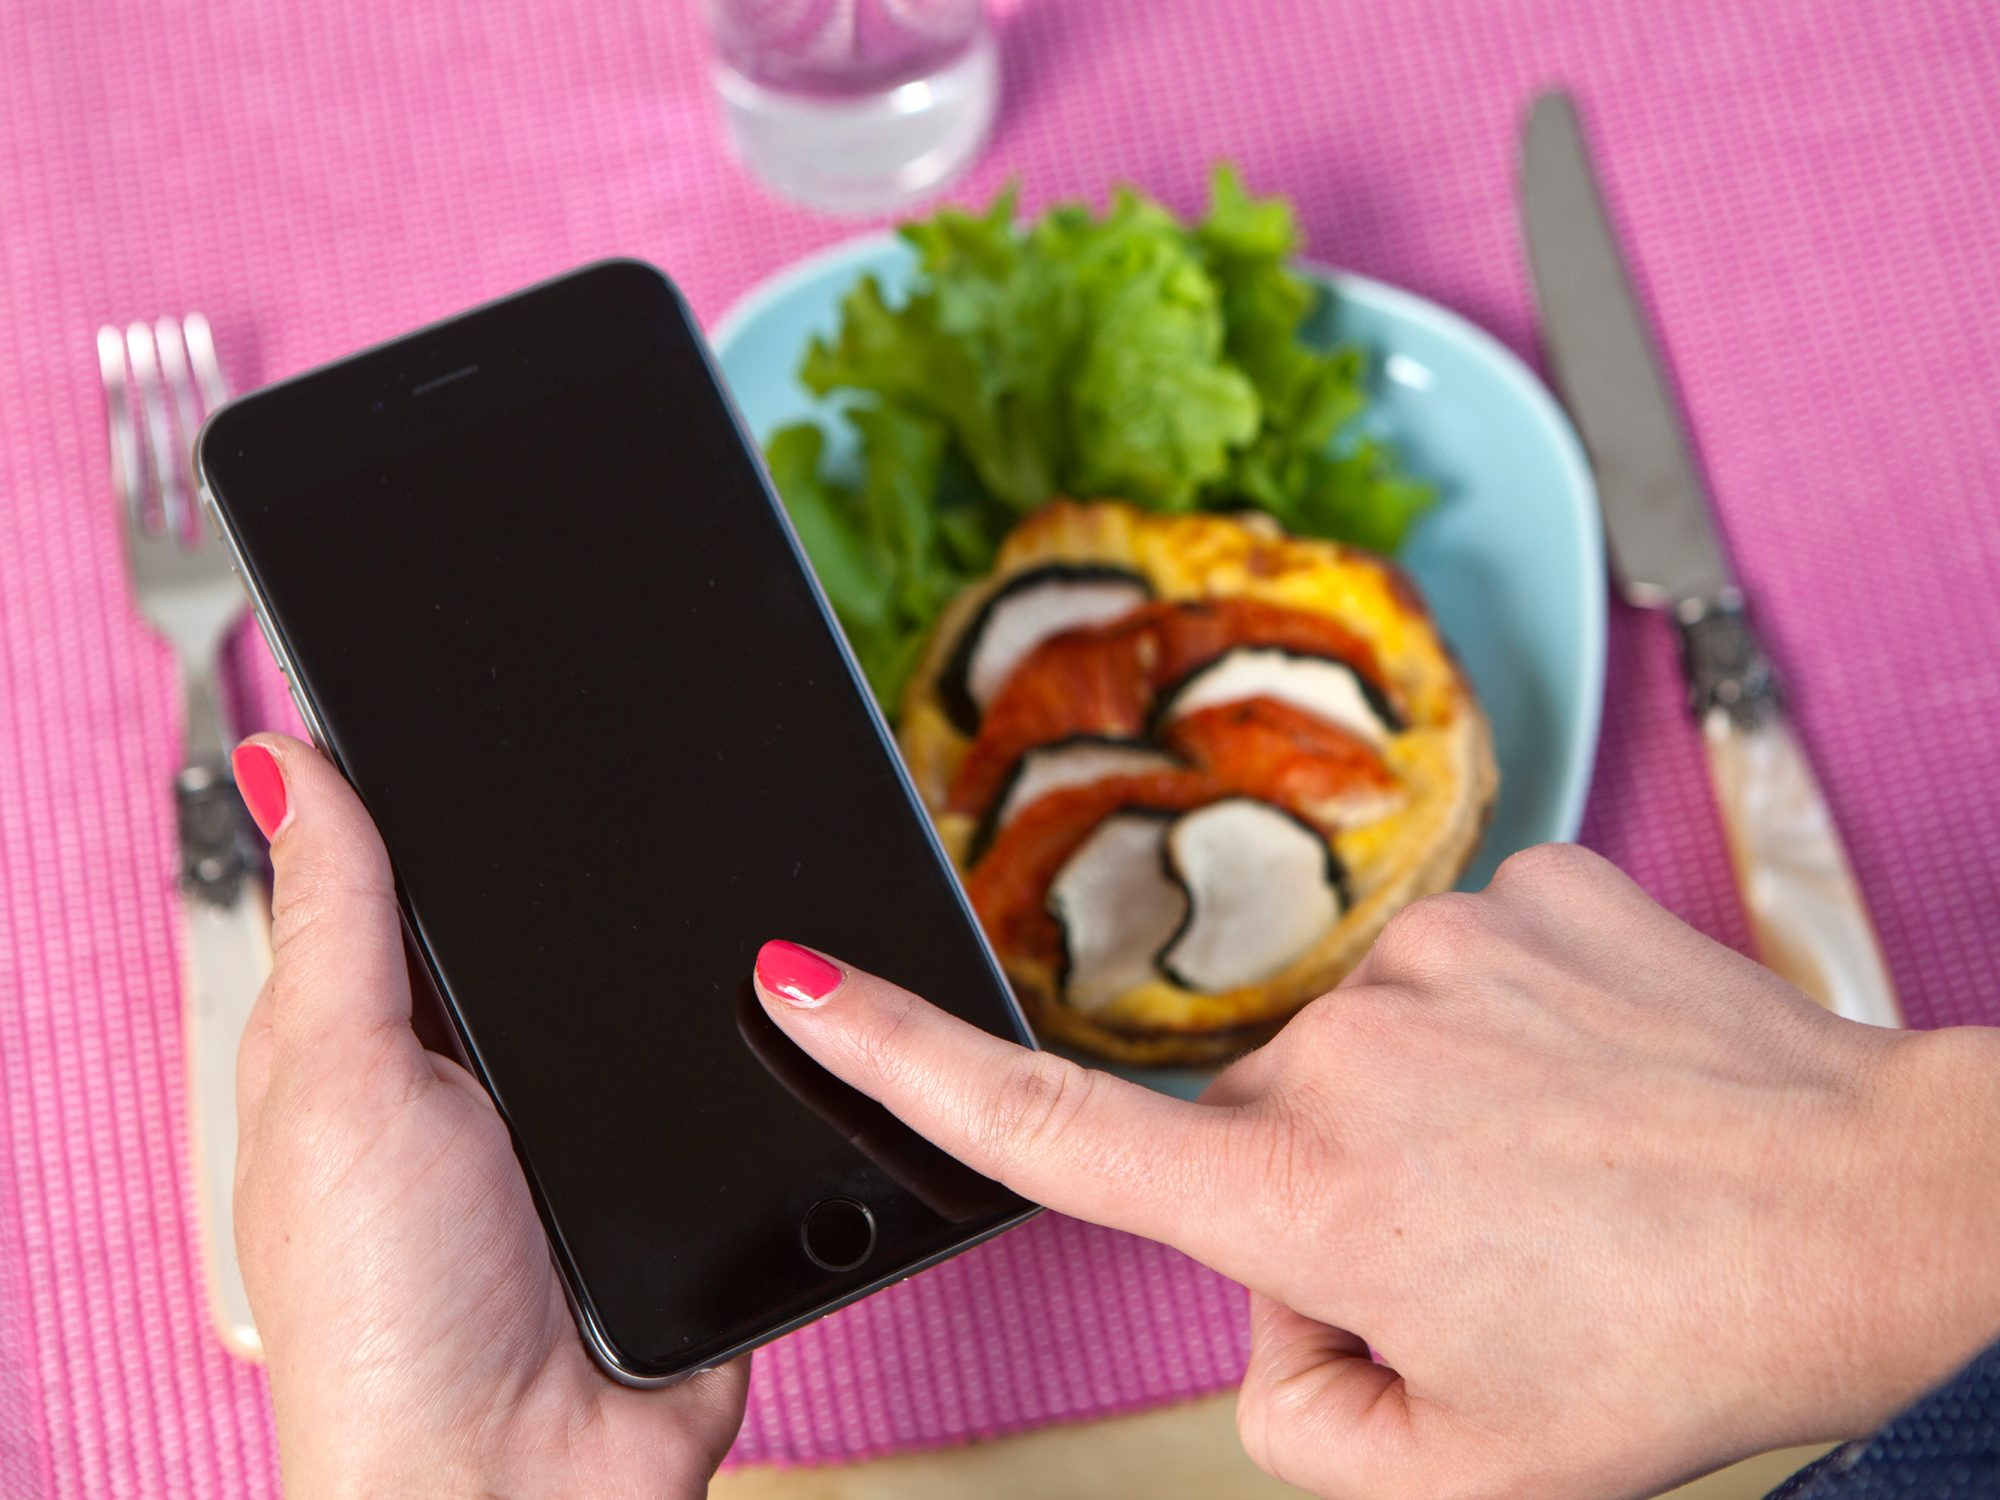 Noom Is the Diet Taking Over Instagram, but Does It Work?